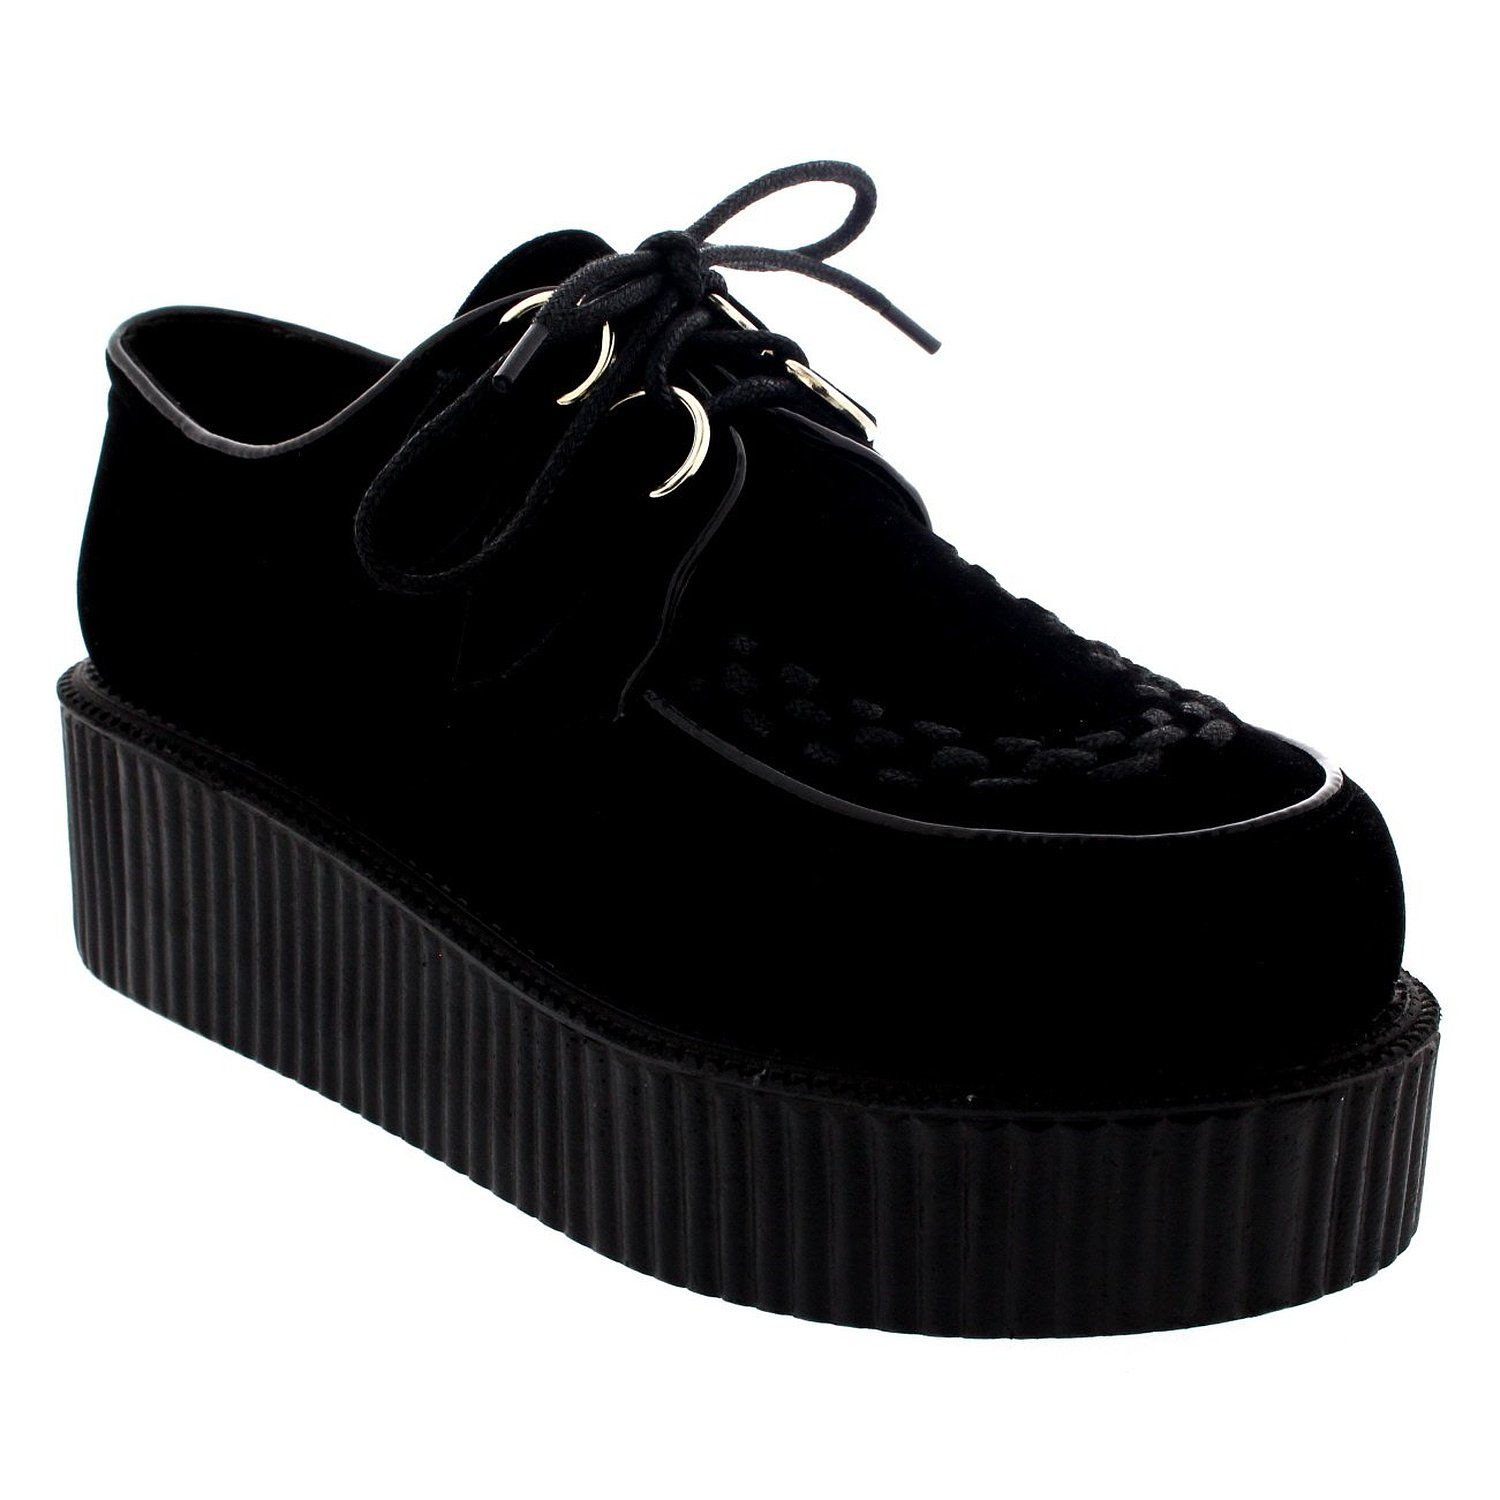 41ec084c918 Get Quotations · Womens Double Platform Punk Goth Flatform Brothel Creepers  Retro Shoes